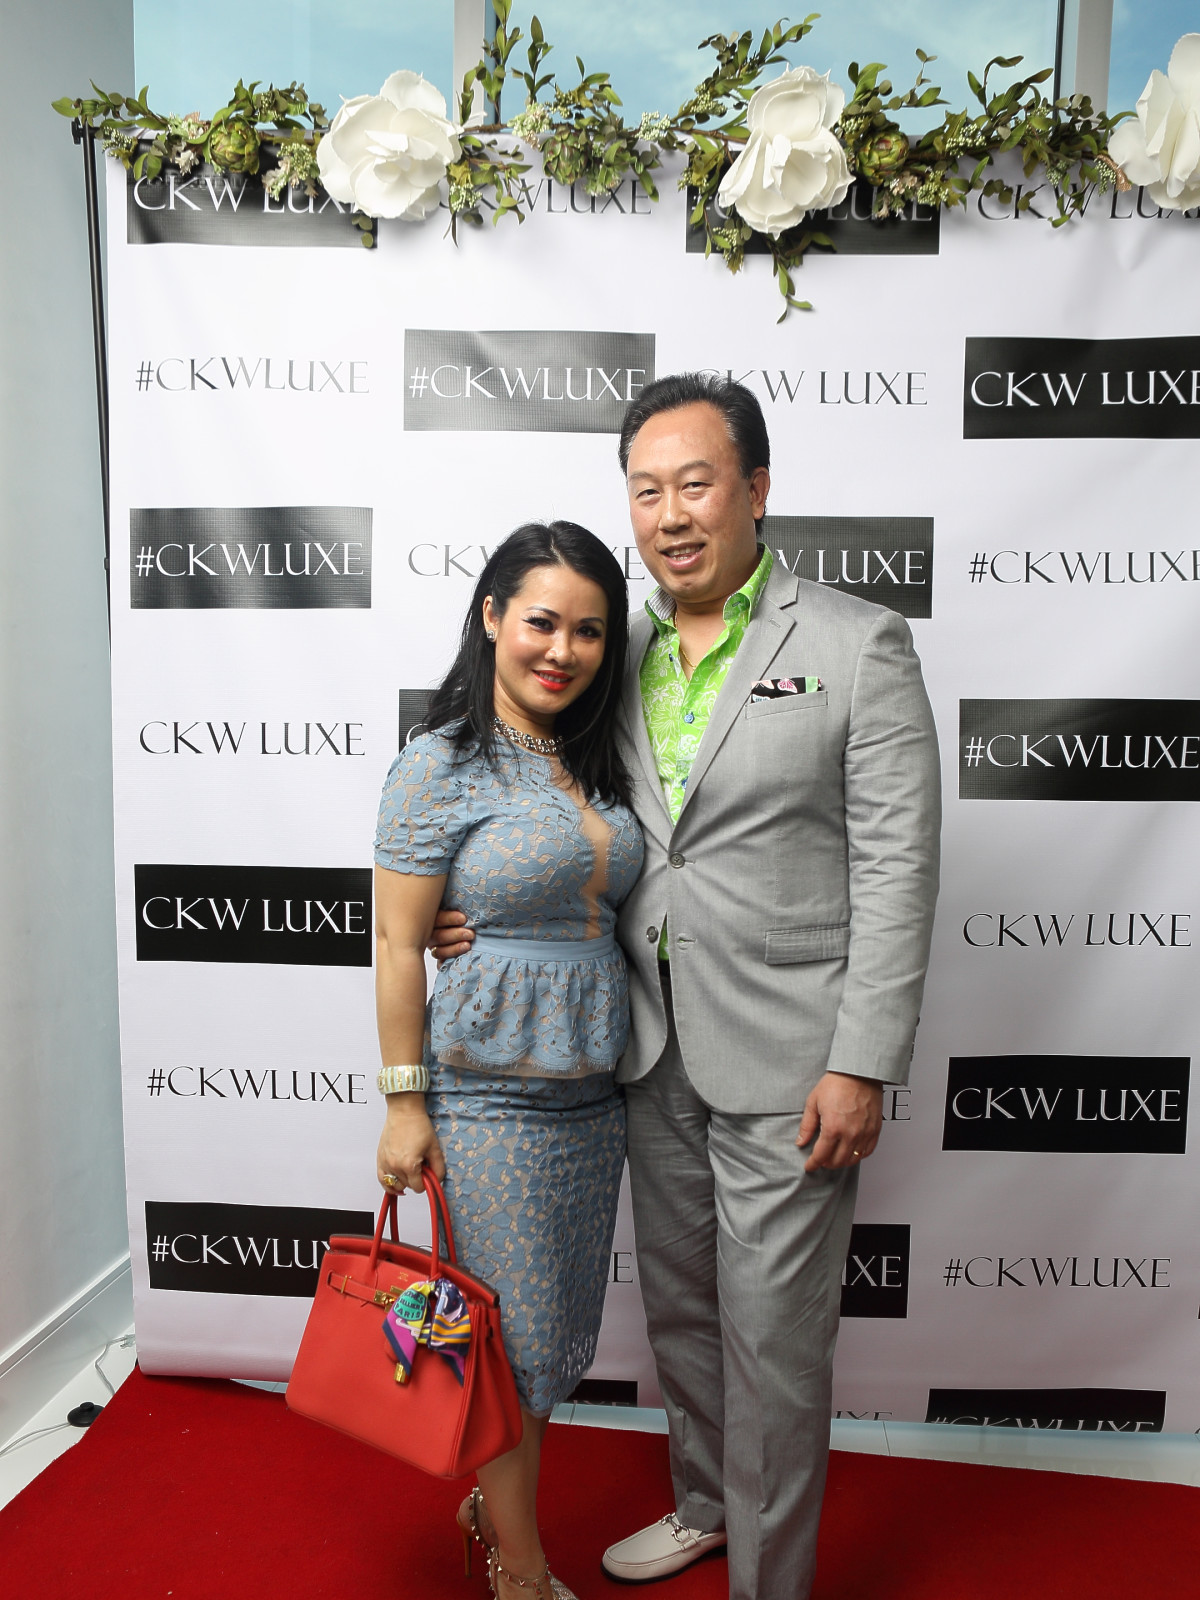 CKW Luxe Star Awards 6/16 Thi Hac Nguyen, Hac Nguyen